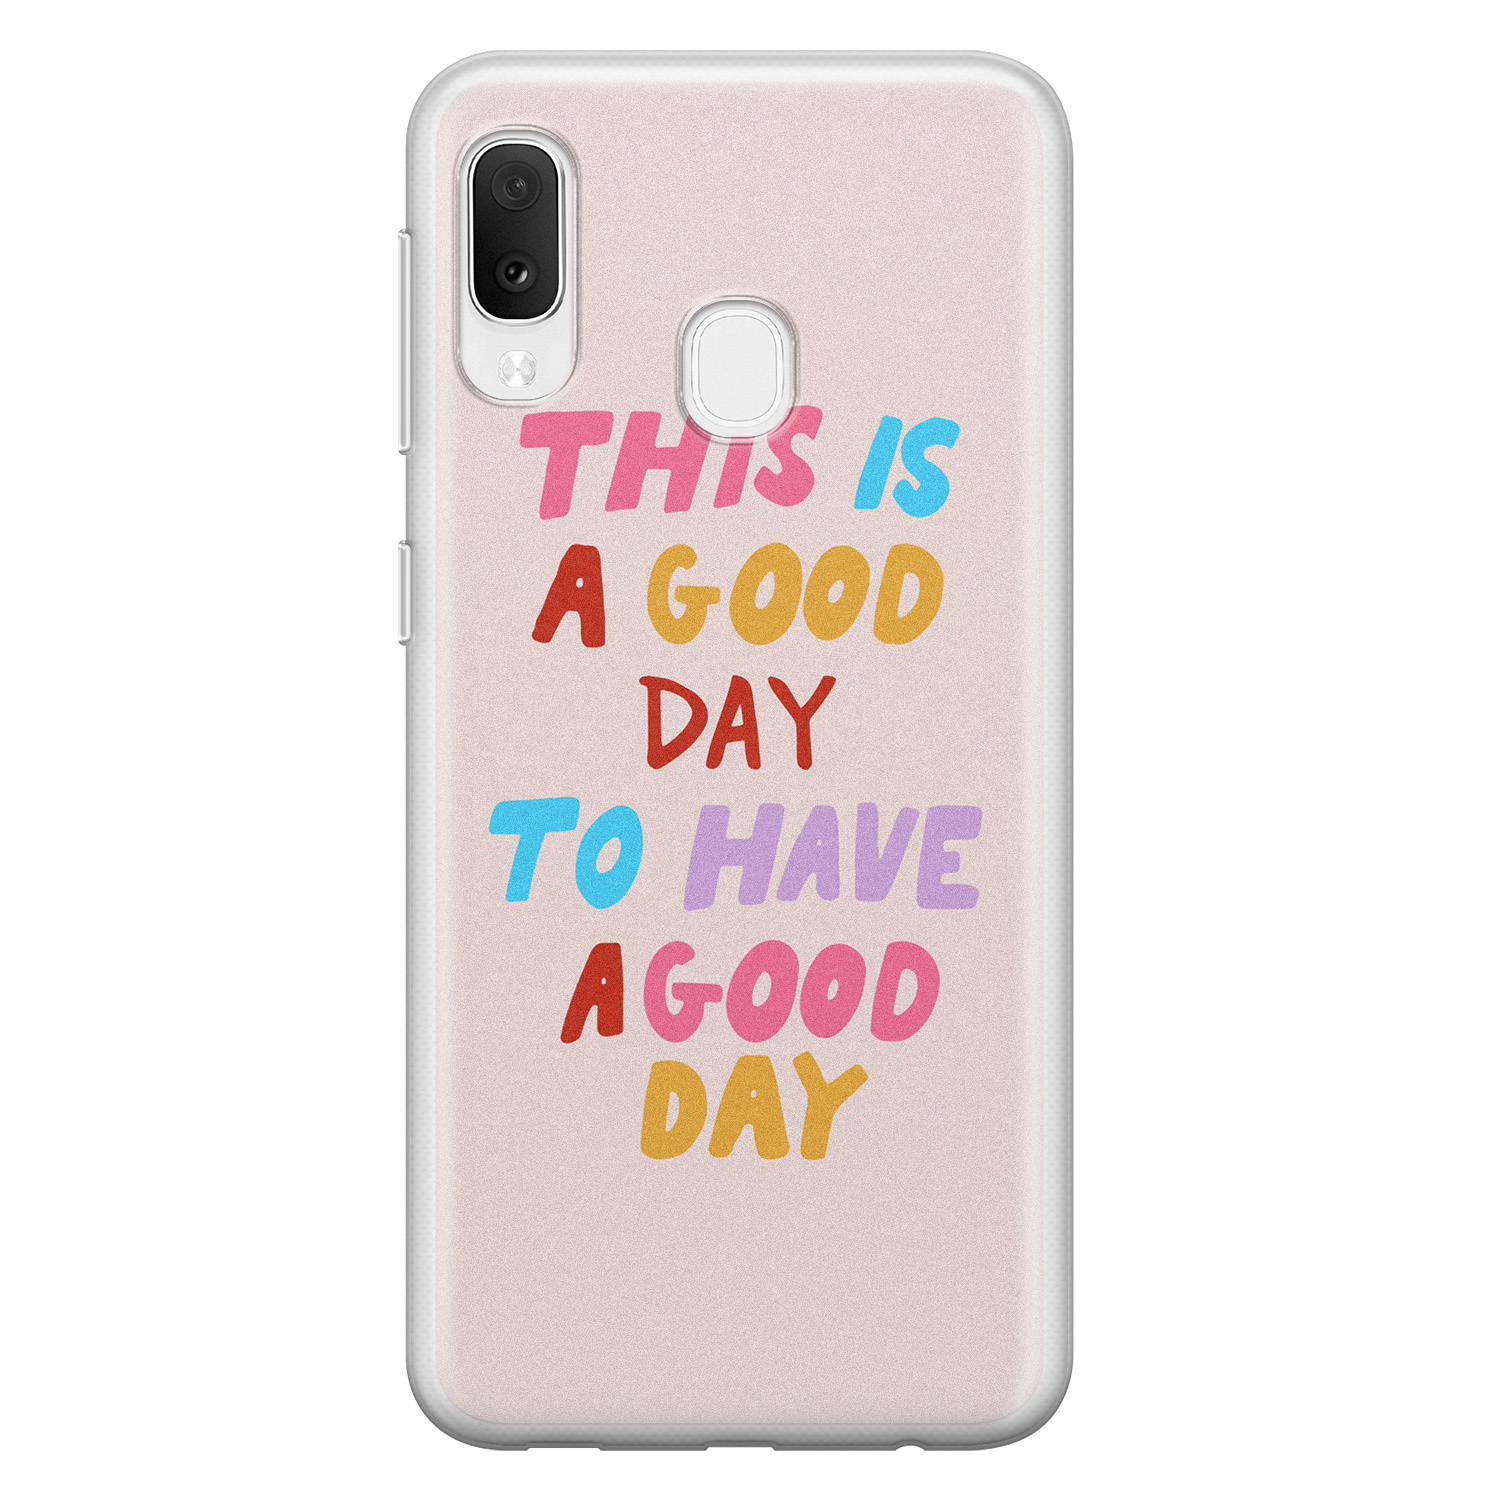 Samsung Galaxy A20e siliconen hoesje - This is a good day